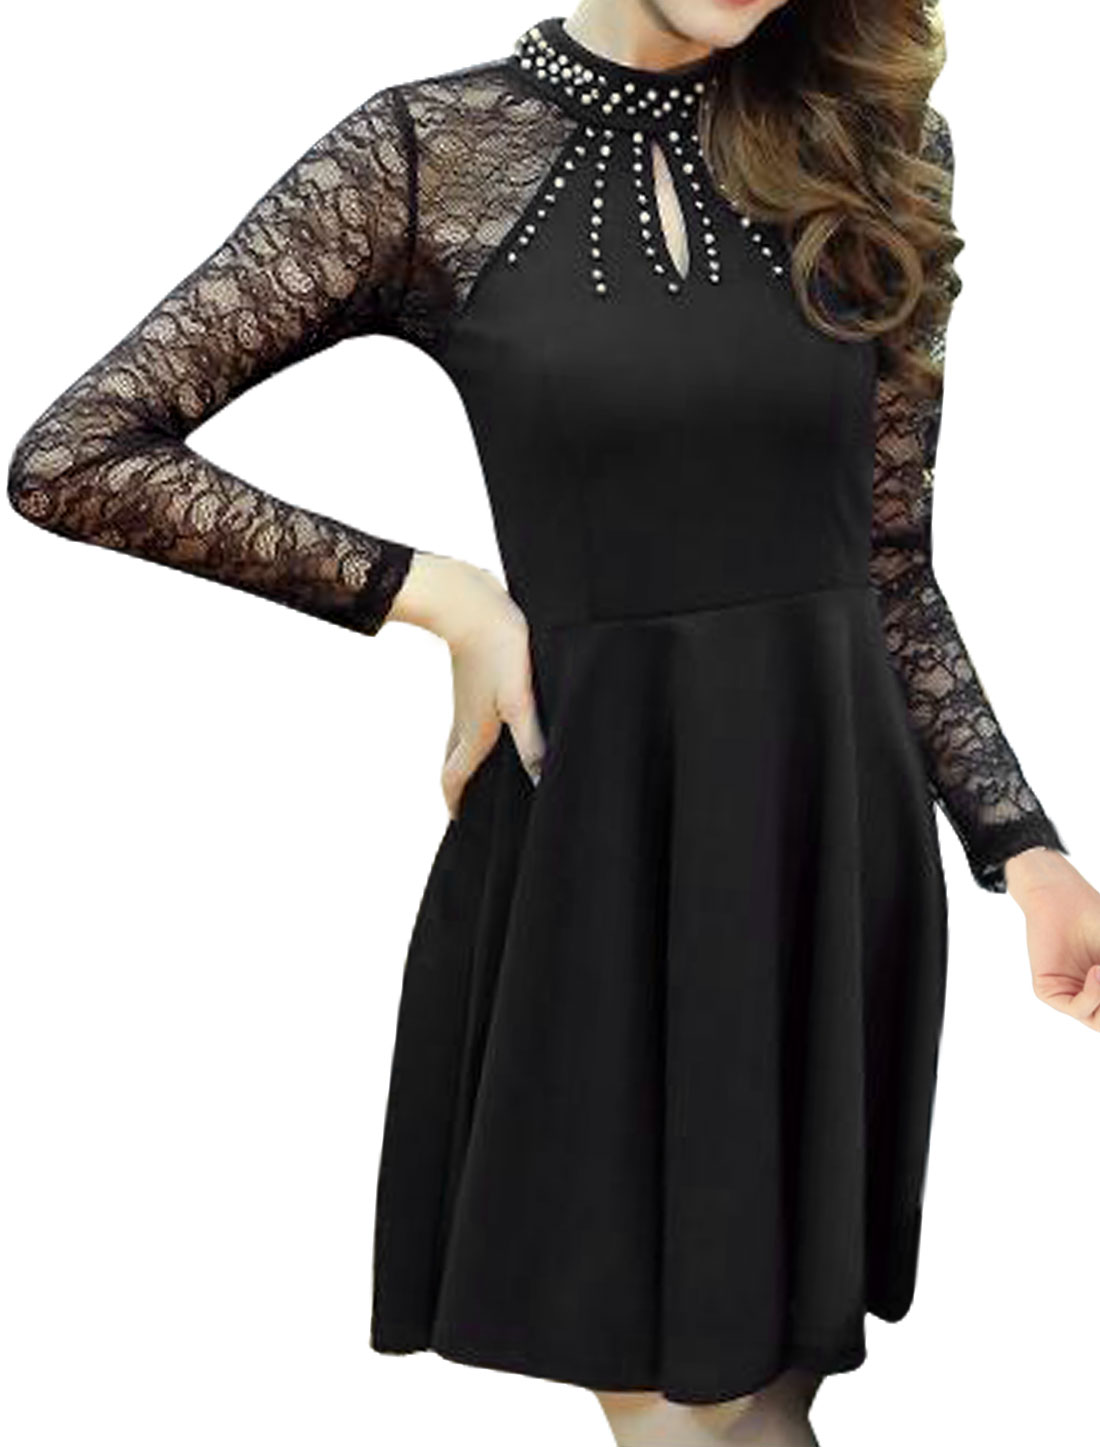 Women Beaded Cut Out Back Lace Fit and Flare Dress Black S